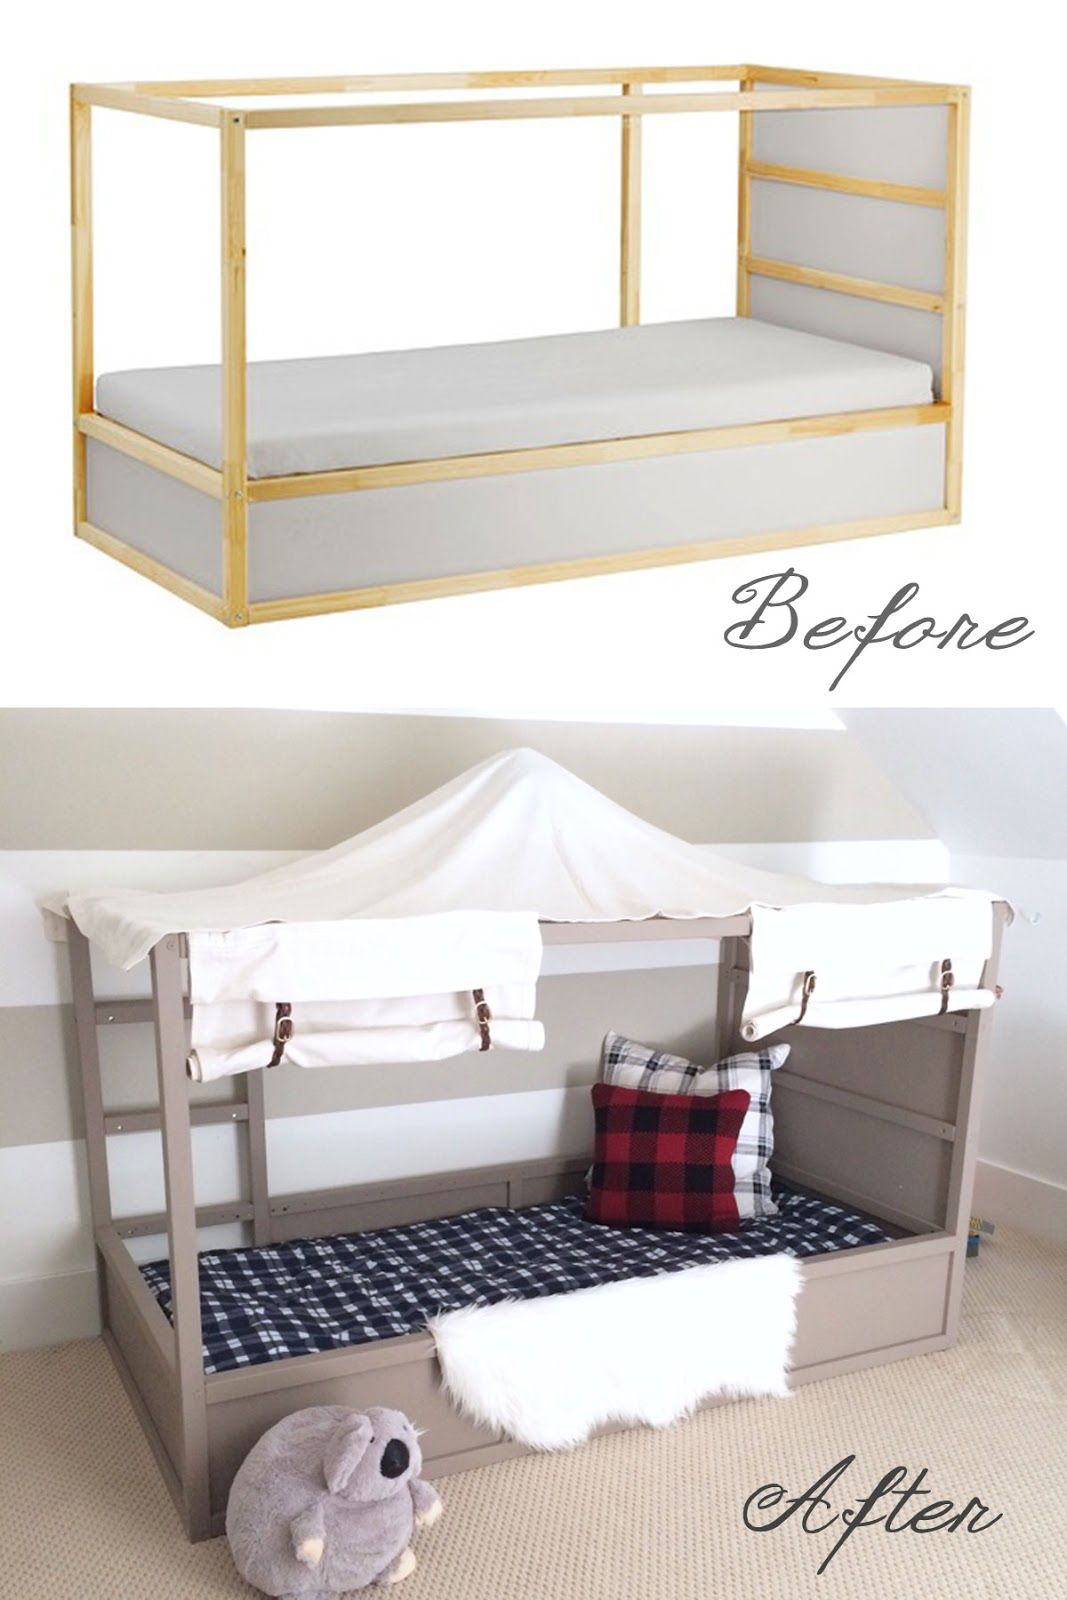 Ikea kura bed hack diy boy canopy bed ikea kura hack Twin bed tent ikea